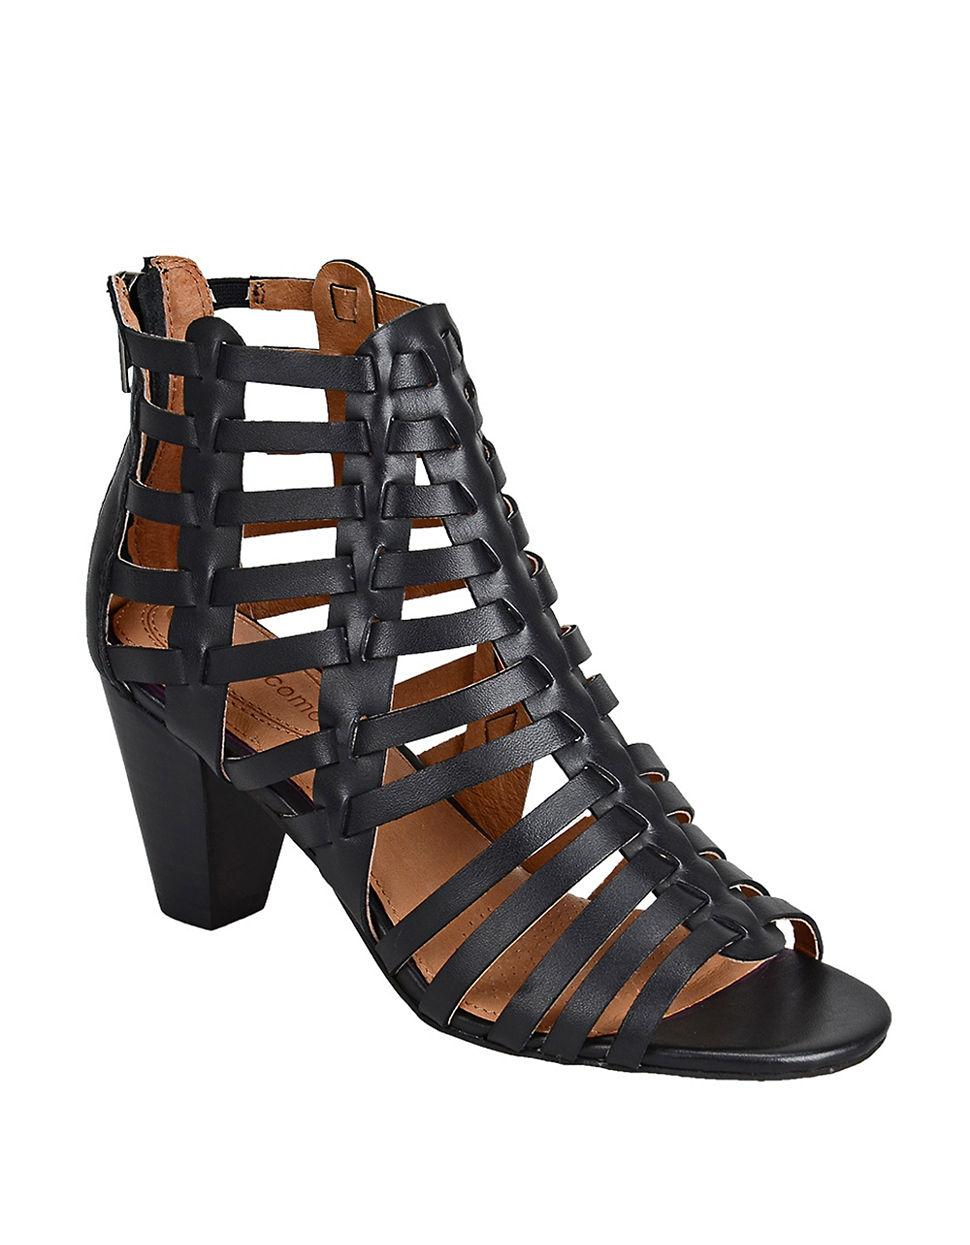 Corso Como Cour Strappy Leather High heel Sandals In Black